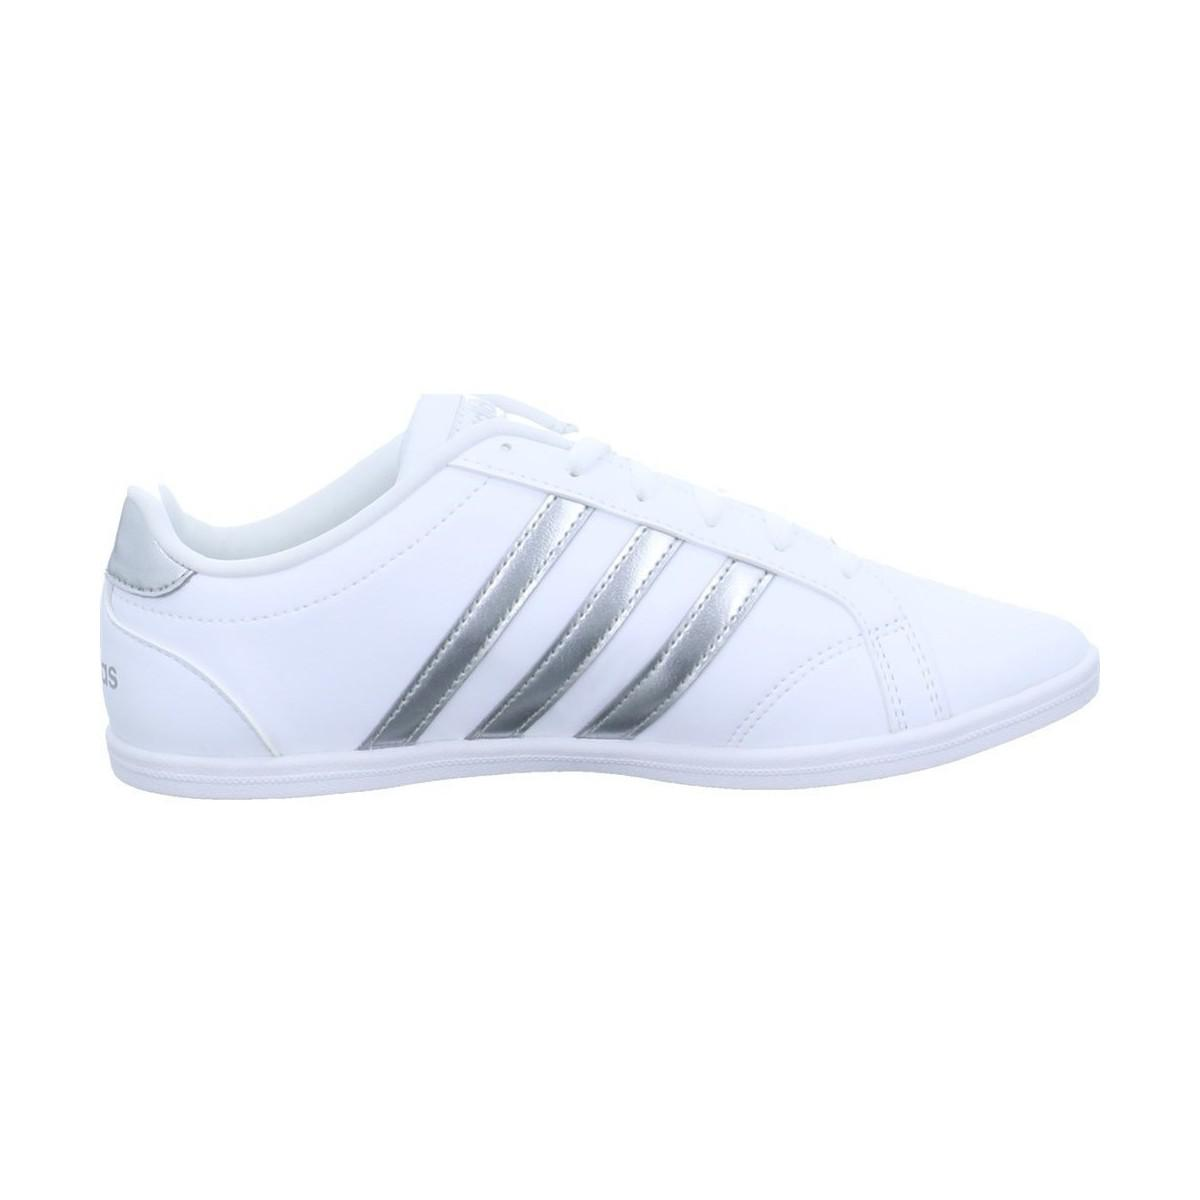 Coneo Qt Women's Shoes (trainers) In White